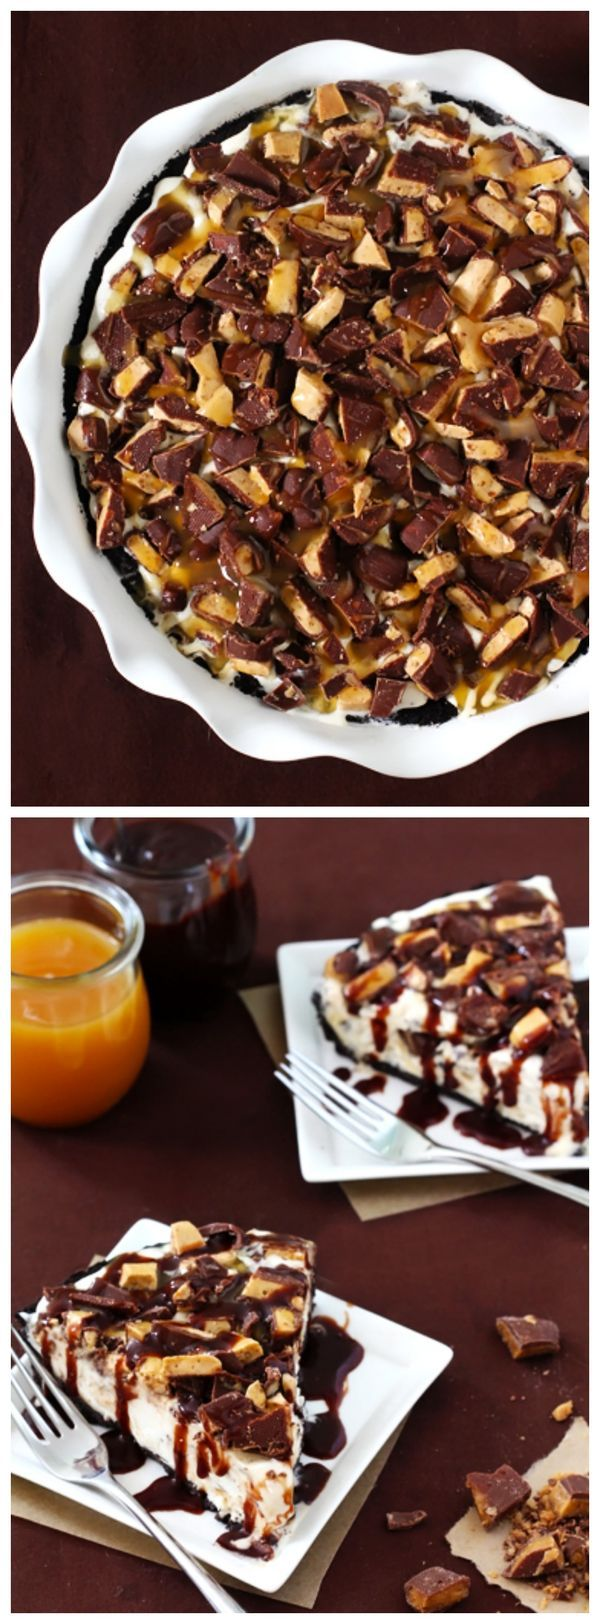 Heath Bar Ice Cream Pie -- unbelievably easy to make, and topped with caramel sauce, hot fudge, and chopped up Heath bars.  | gimmesomeoven.com #dessert #pie #chocolate